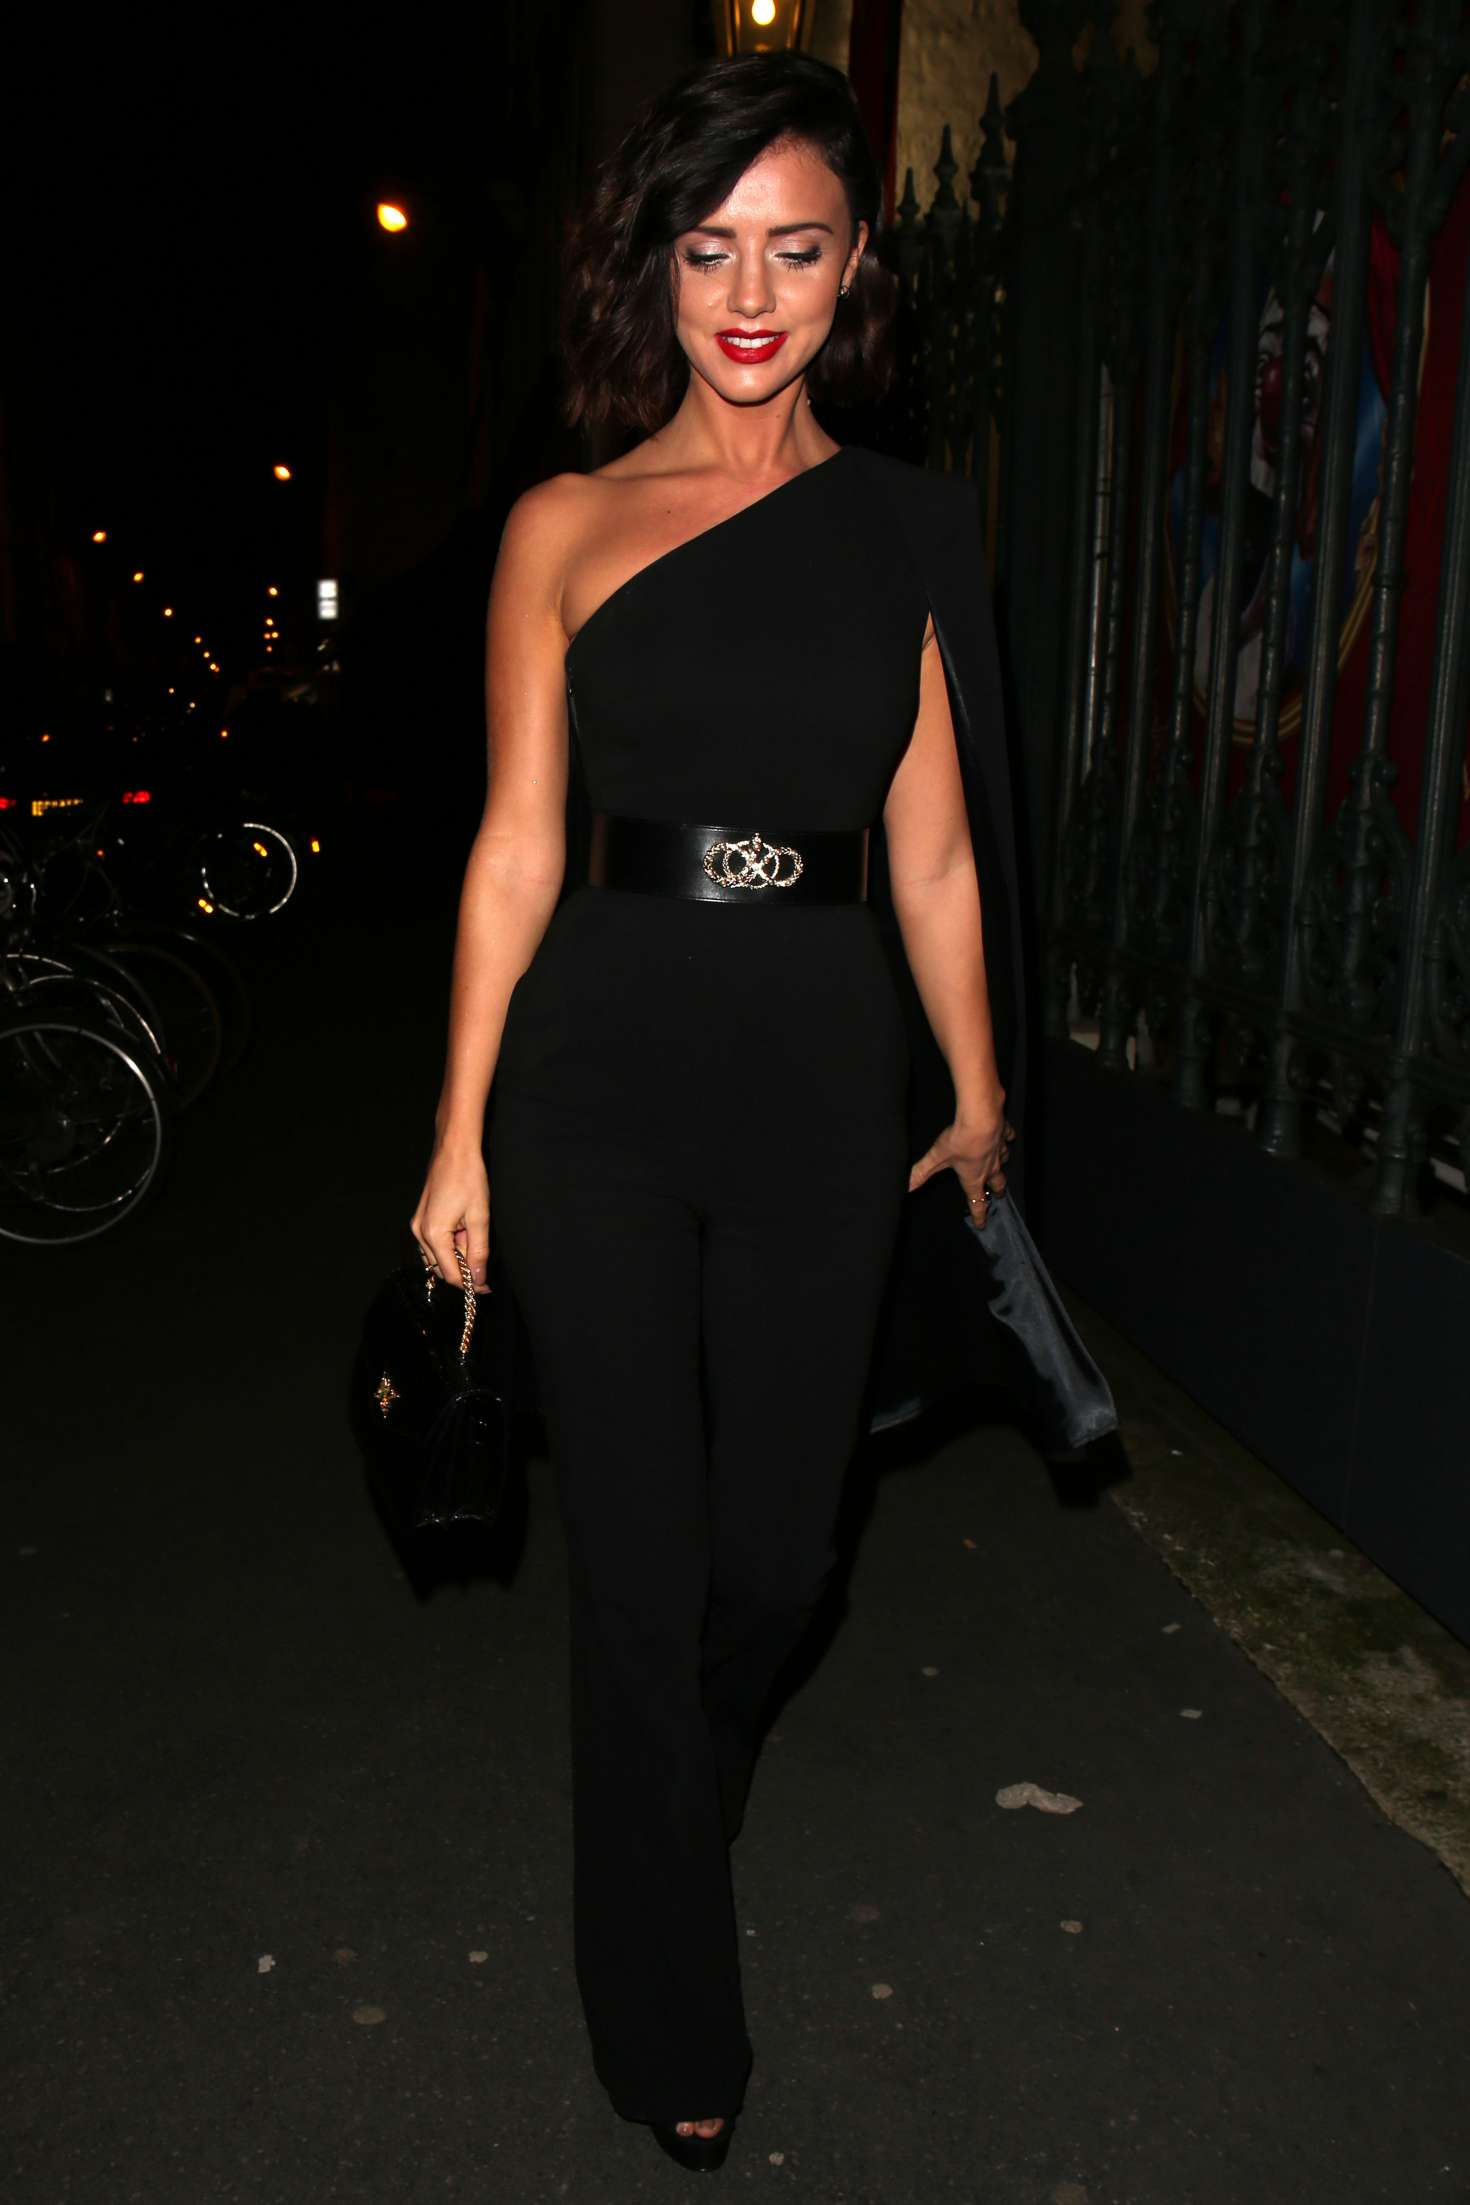 Lucy Mecklenburgh 2018 : Lucy Mecklenburgh: Arriving at Gun Pei Fashion Show 2018 -04